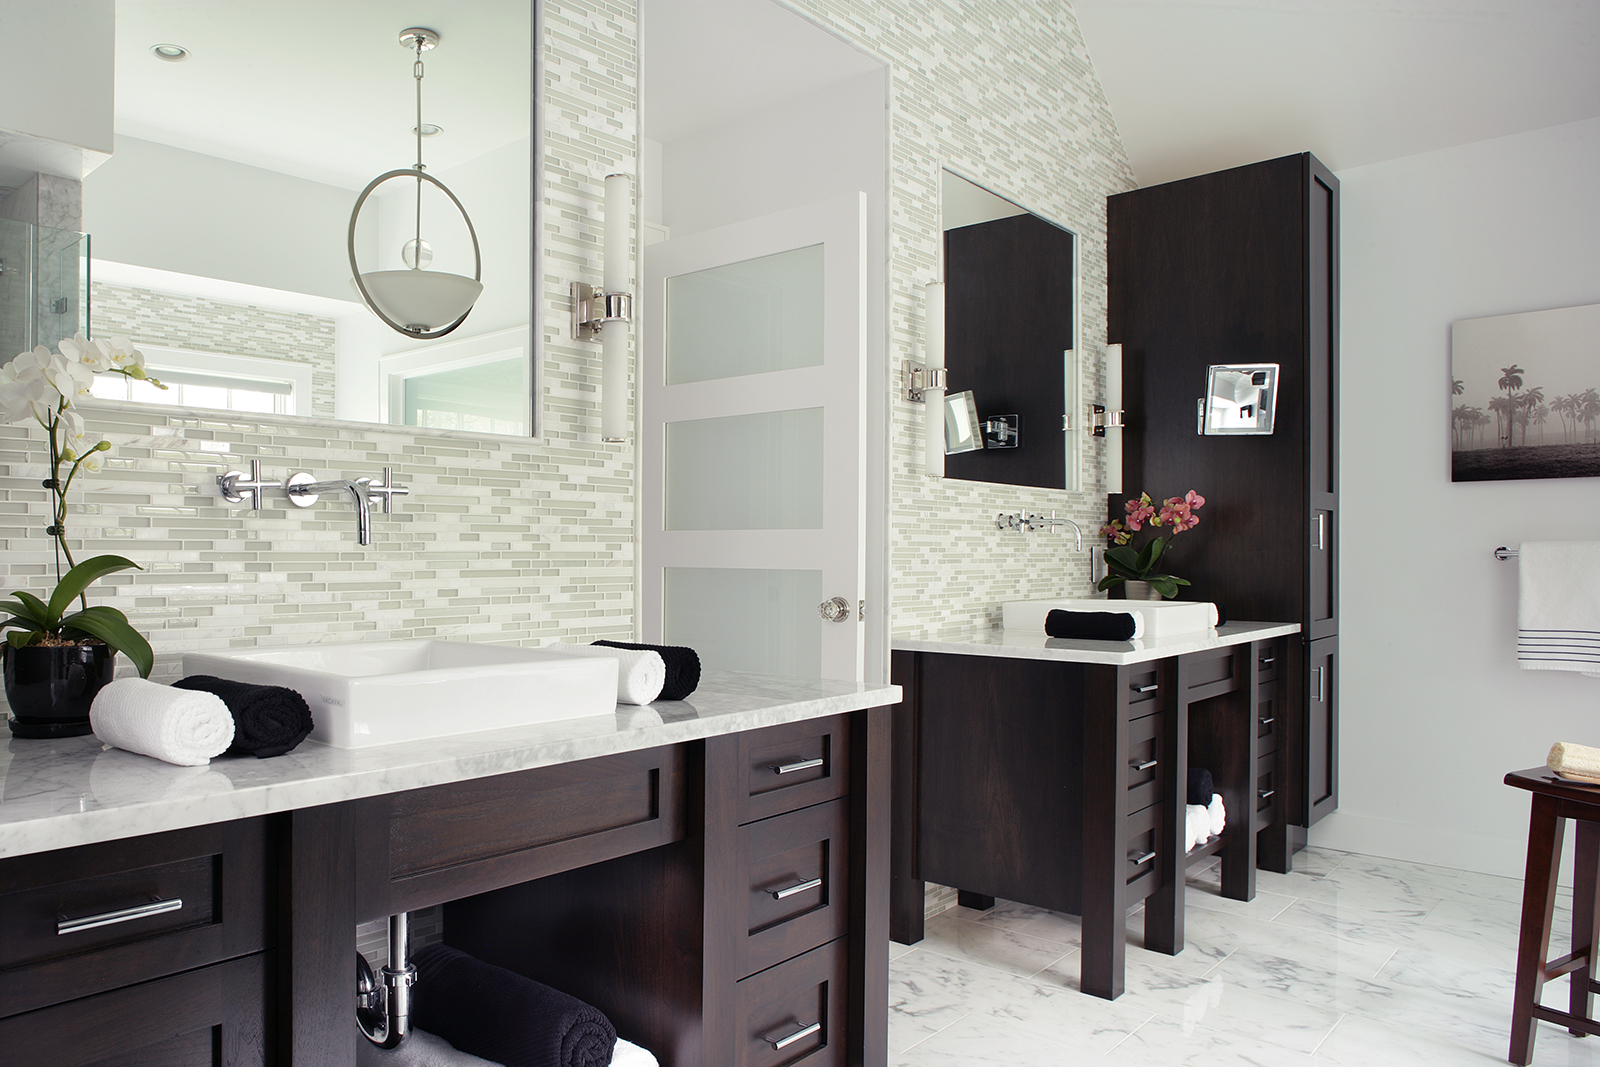 Peter salerno inc transitional bathroom wins 2015 for Bathroom remodel 2015